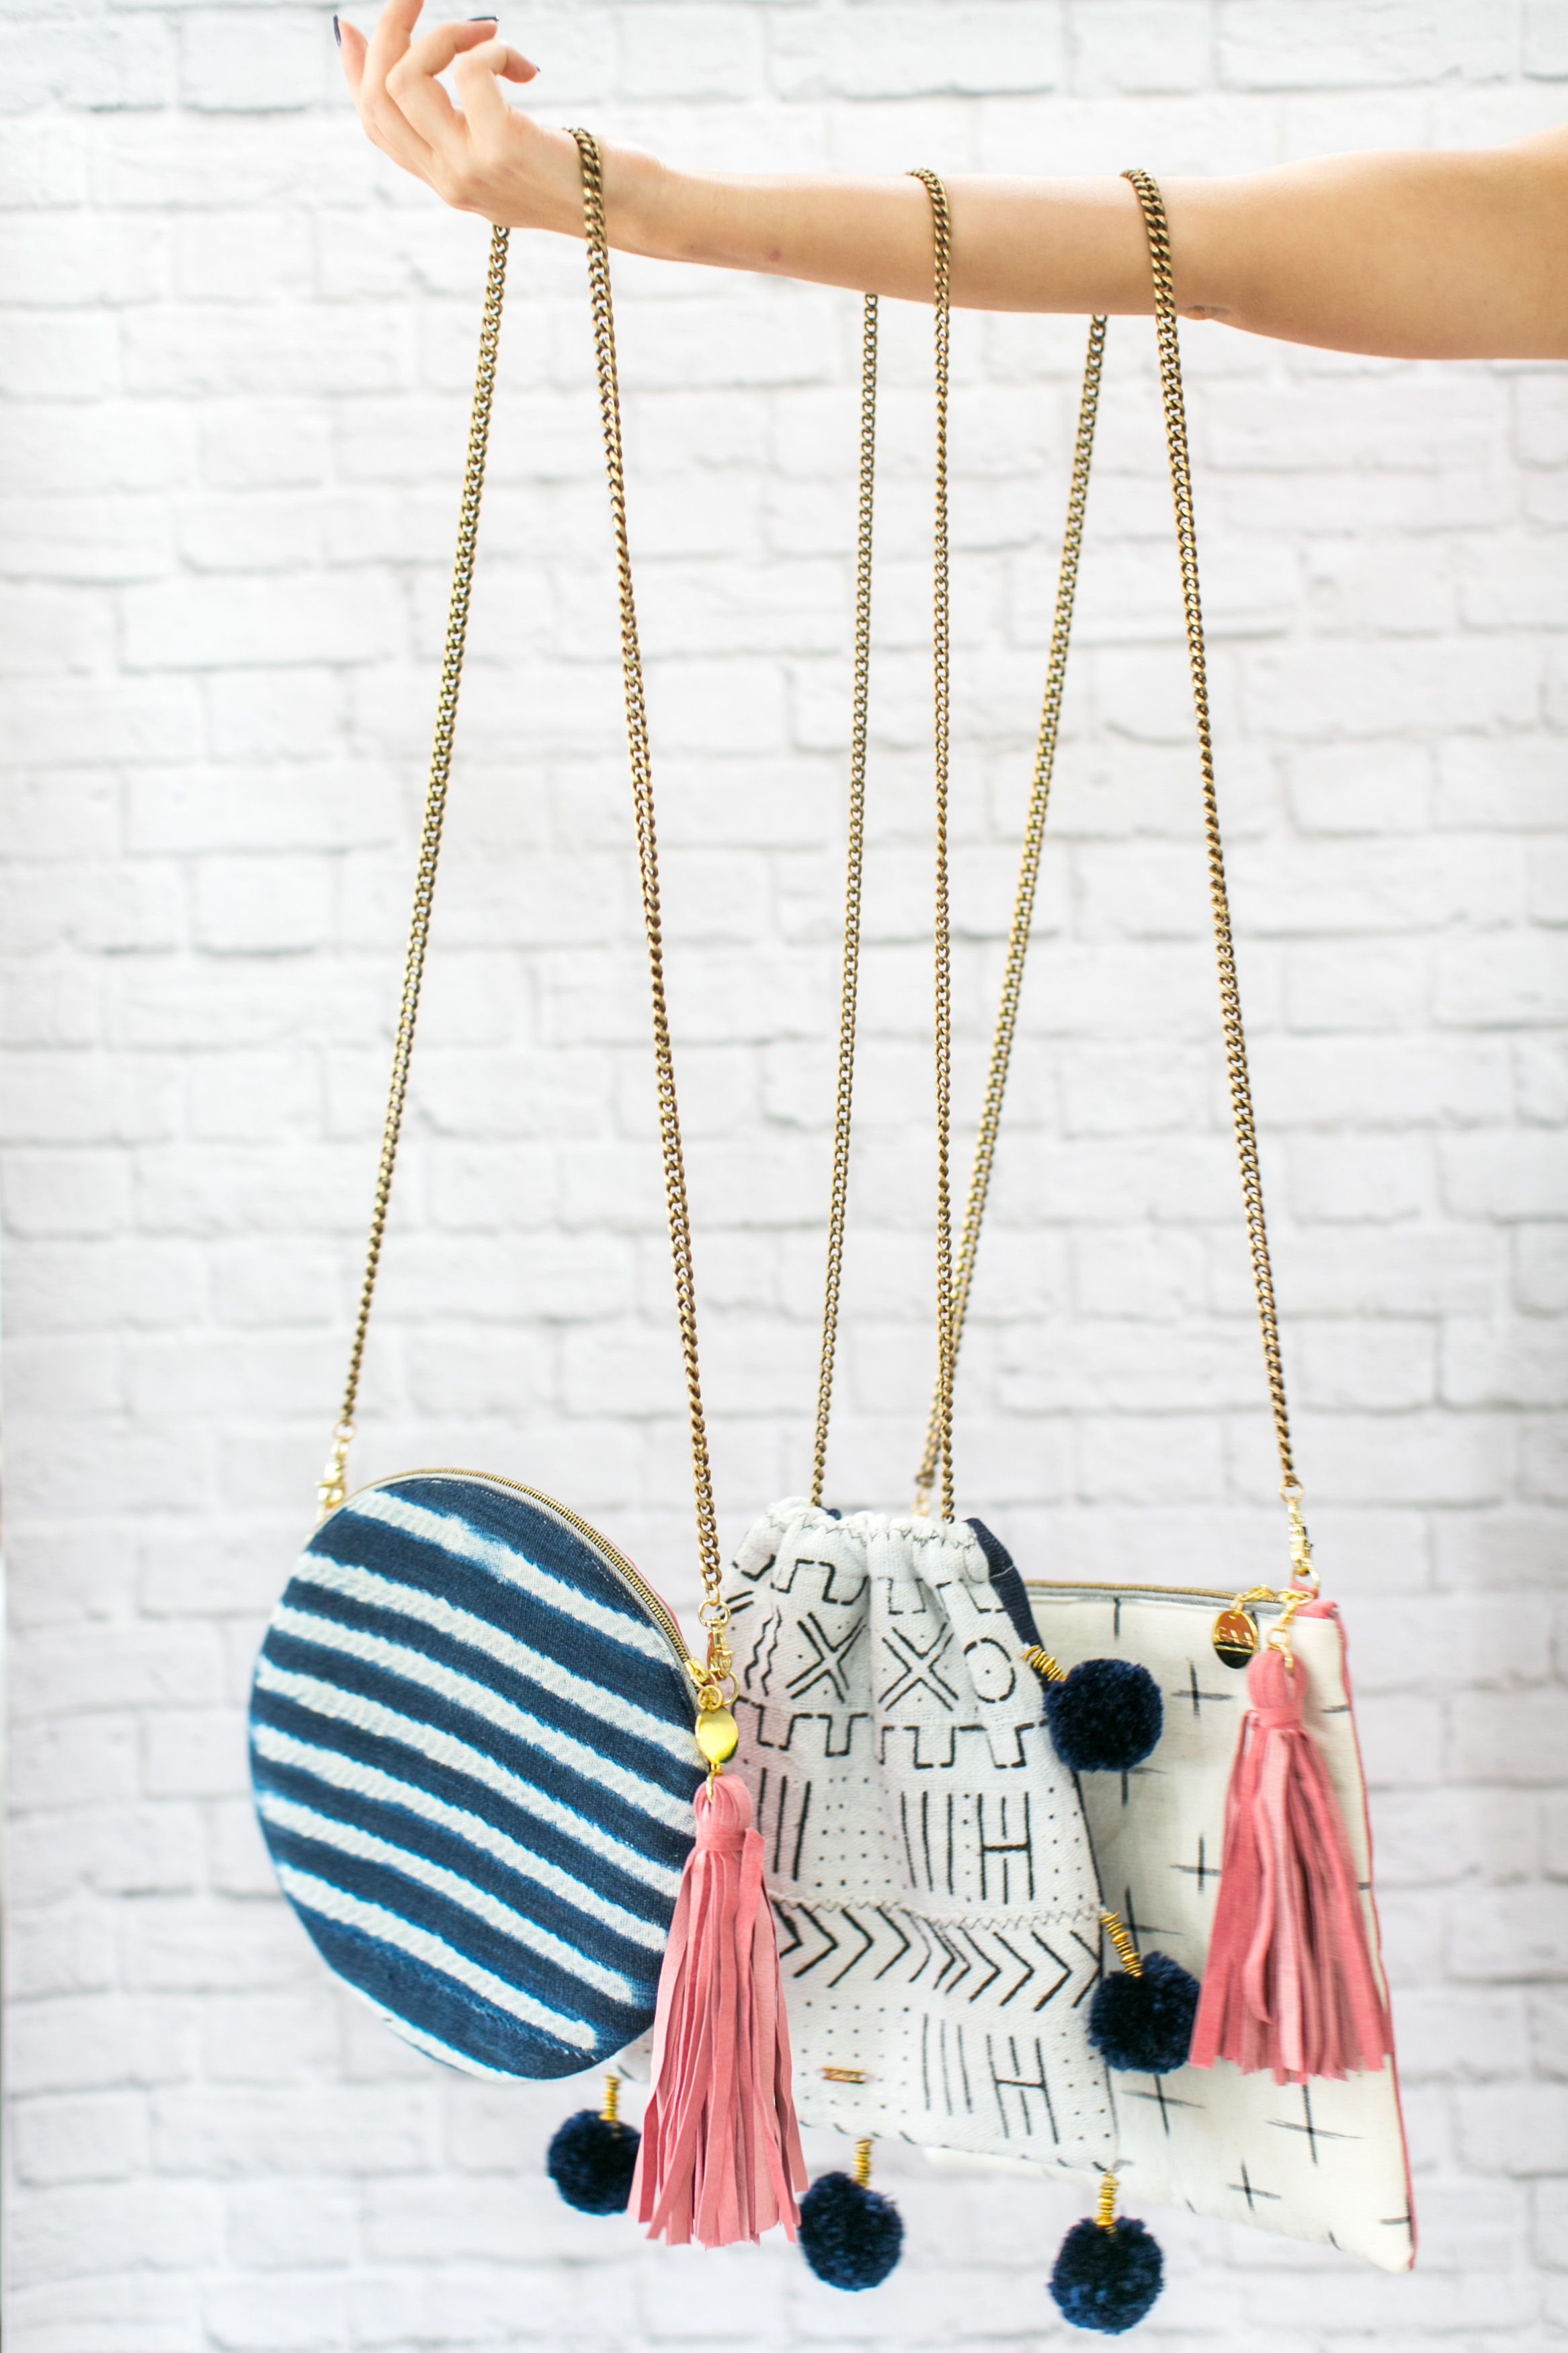 With a playful pattern and stylish tassels and pom pom charms, these ...